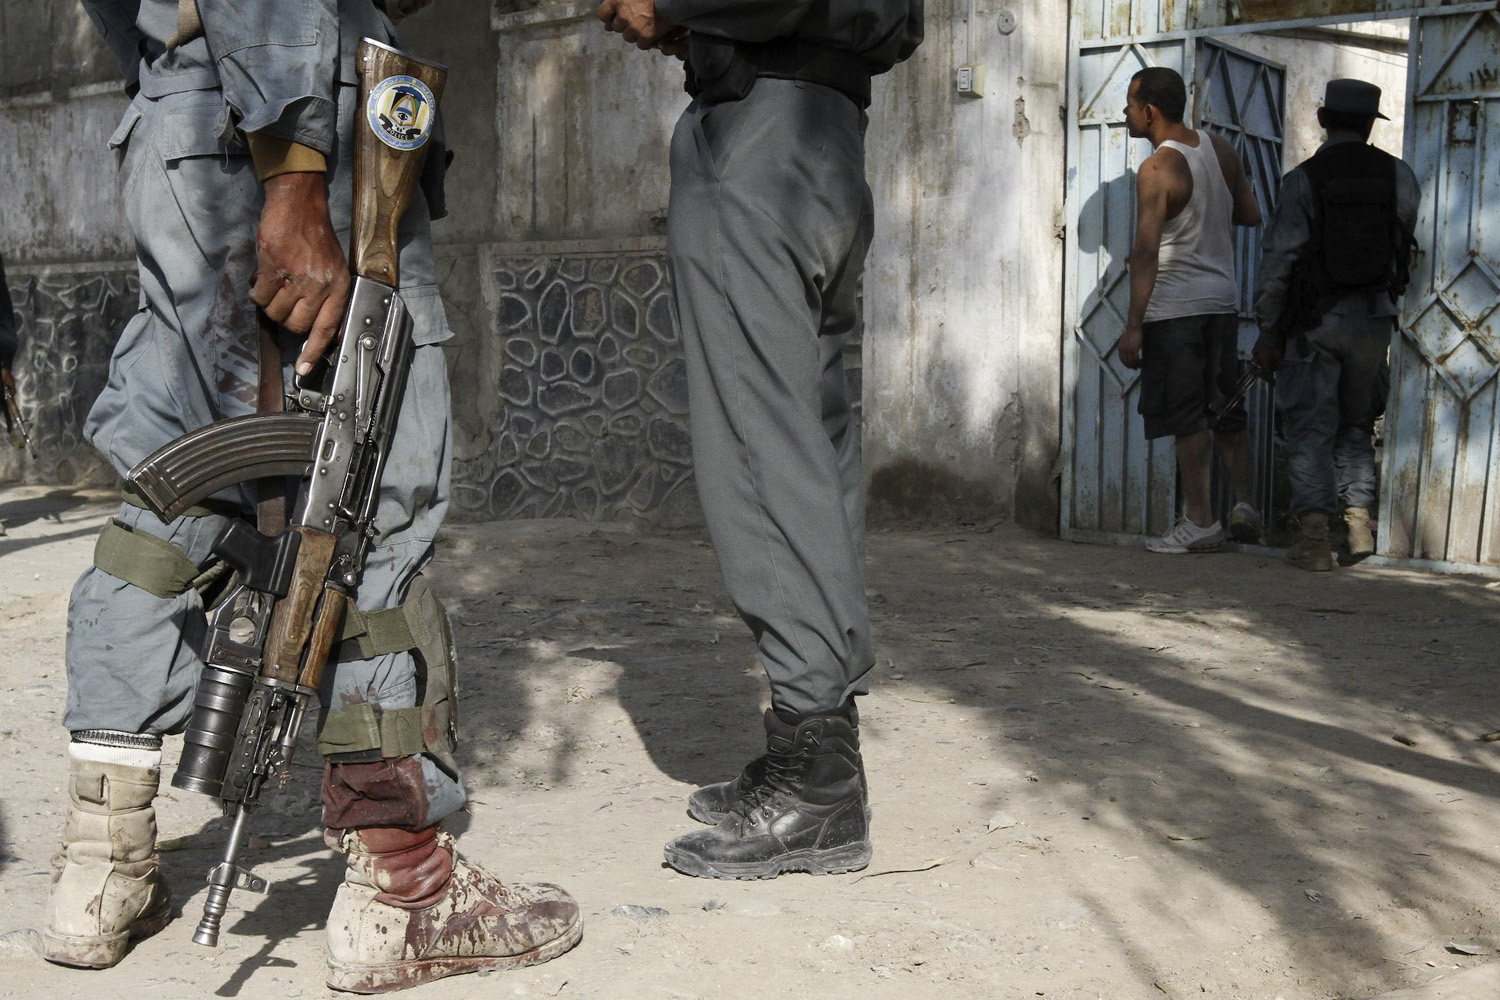 October 31, 2011. Blood is seen on the leg of an Afghan policeman after a suicide bomb attack near a building used by the Office of the United Nations High Commissioner for Refugees (UNHCR) in Kandahar.